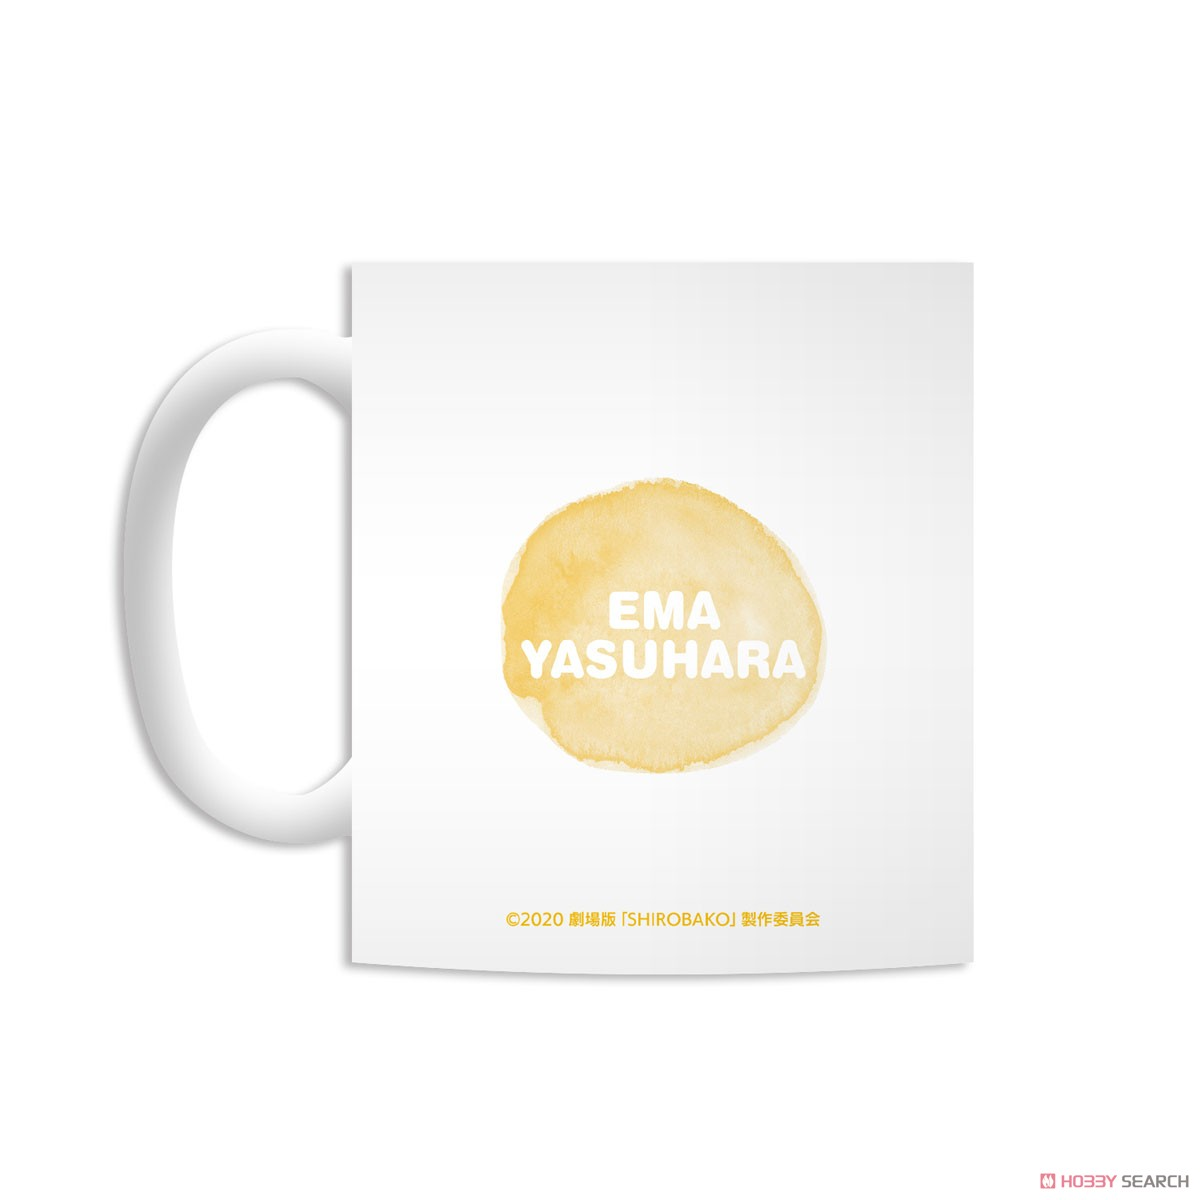 Shirobako the Movie Ema Yasuhara Ani-Art Mug Cup (Anime Toy) Item picture2